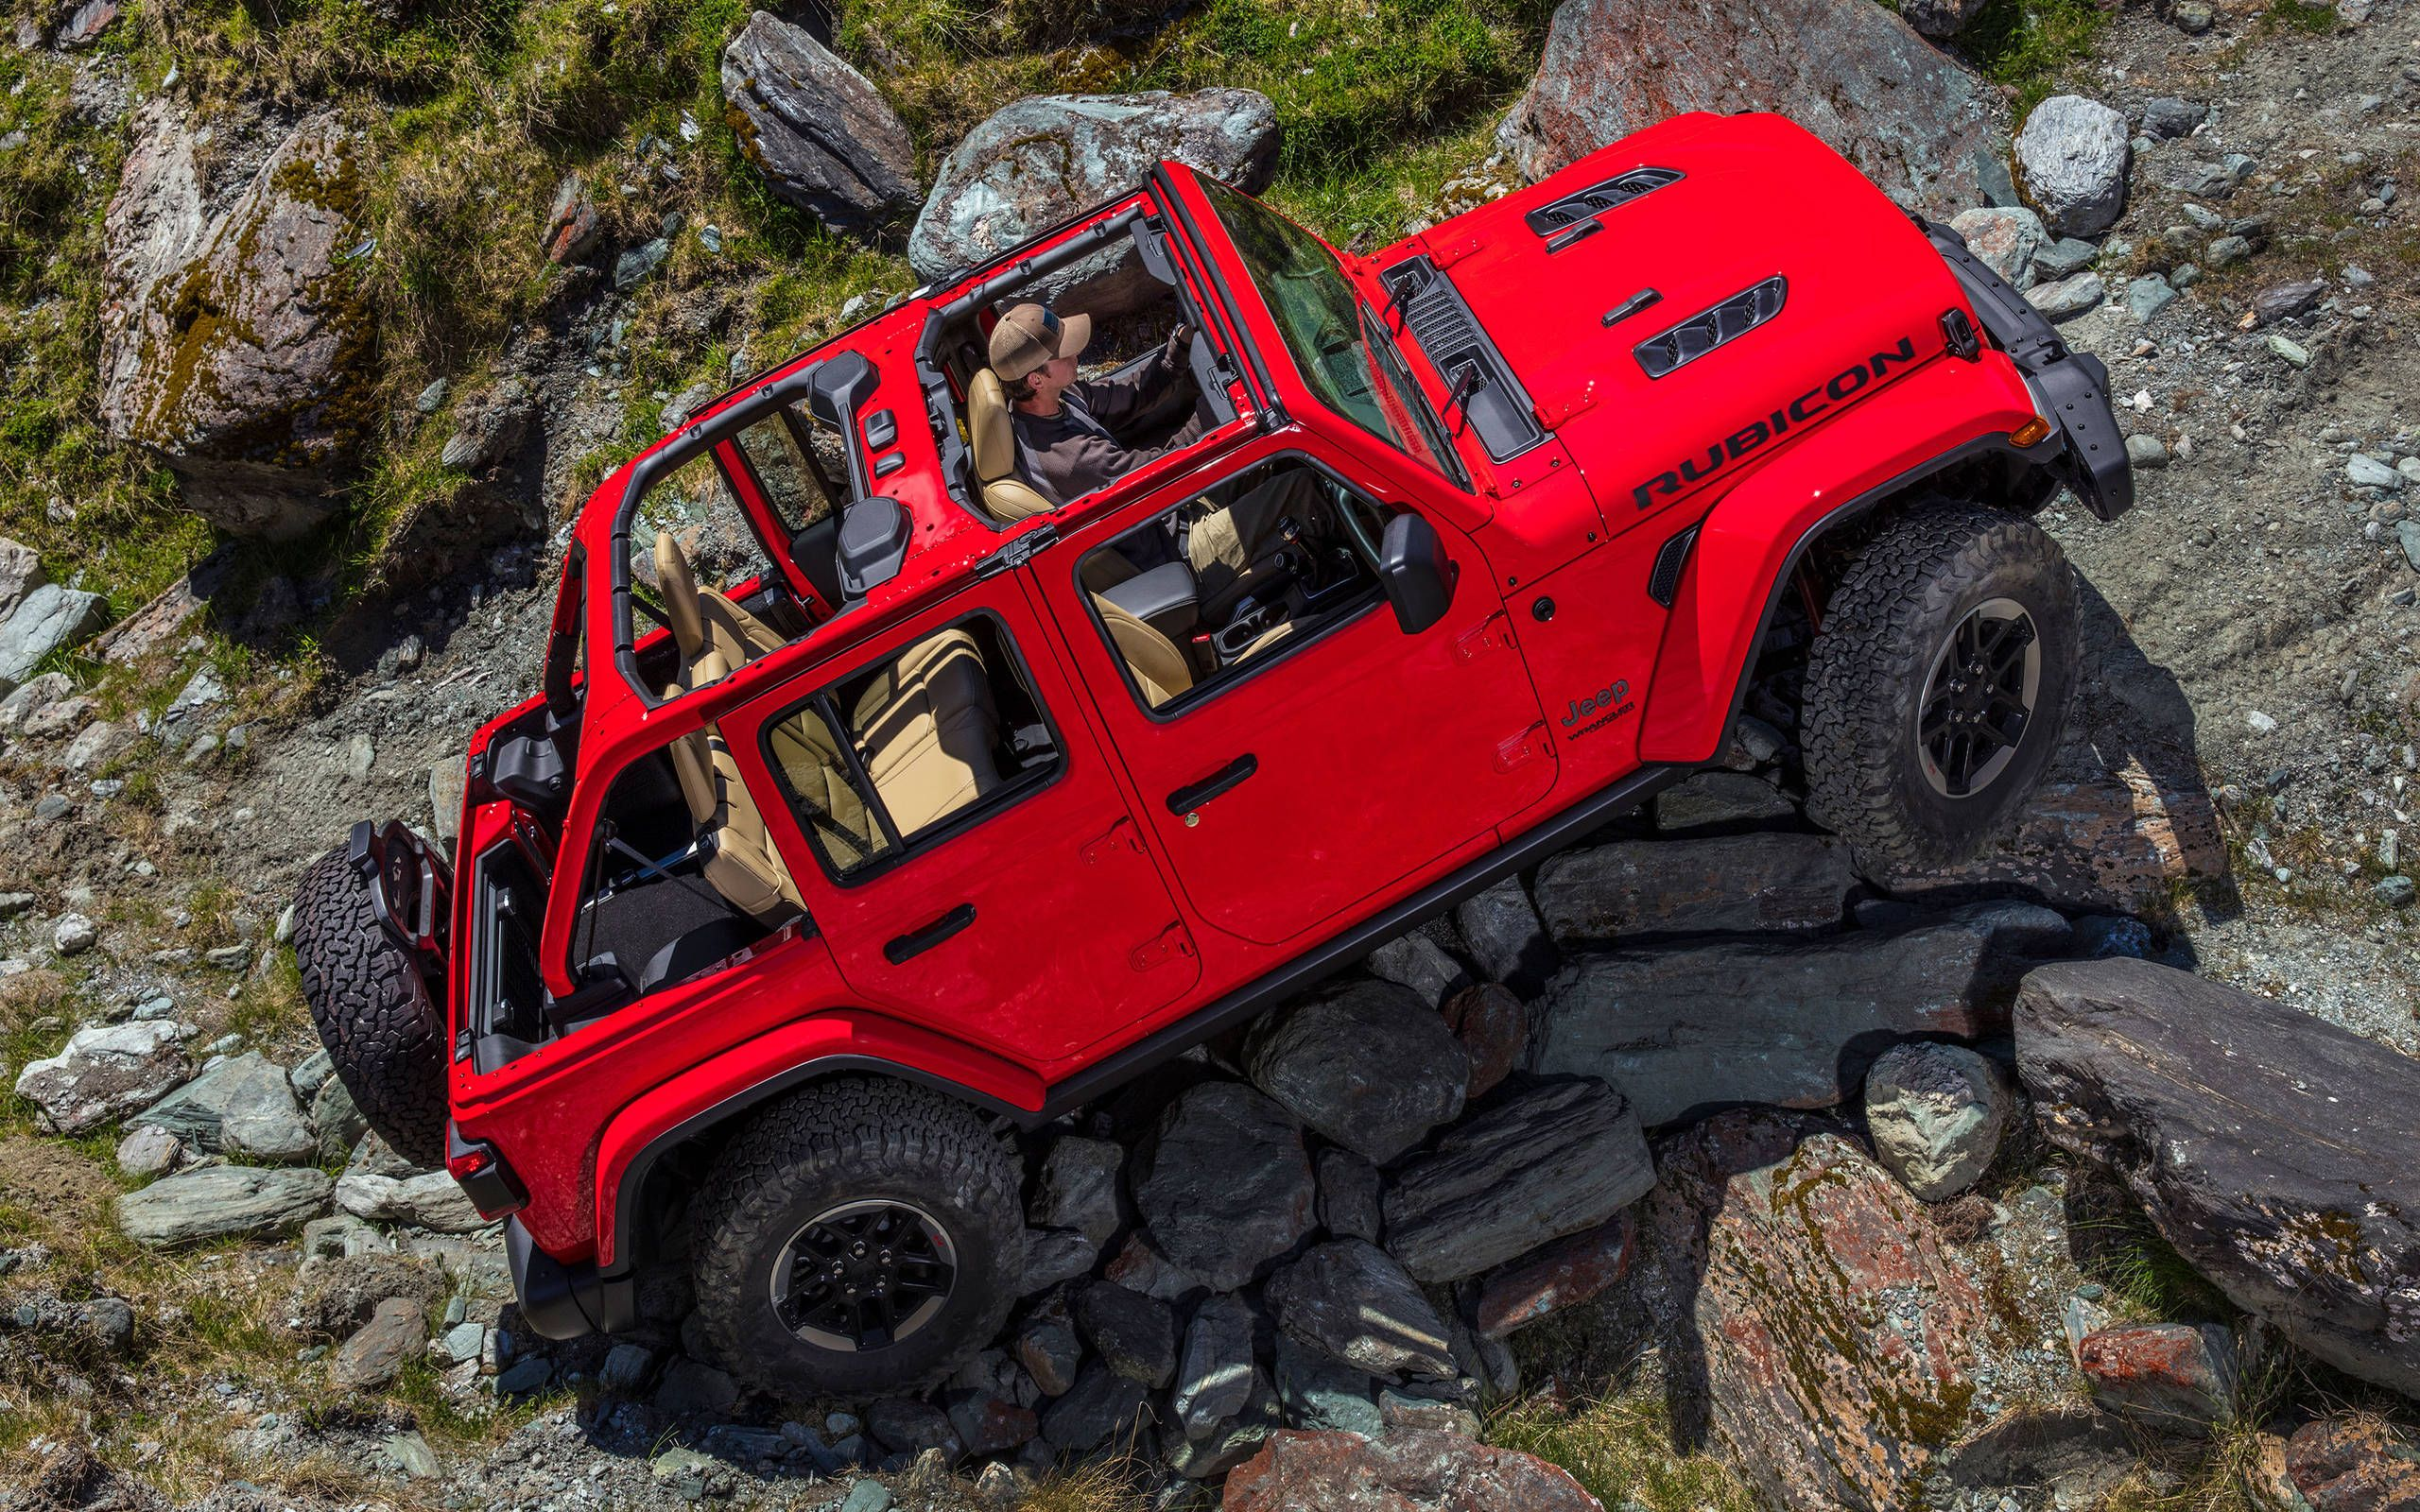 2018 Jeep Wrangler Jl Rubicon First Drive Keeper Of The All American Four Wheel Drive Flame